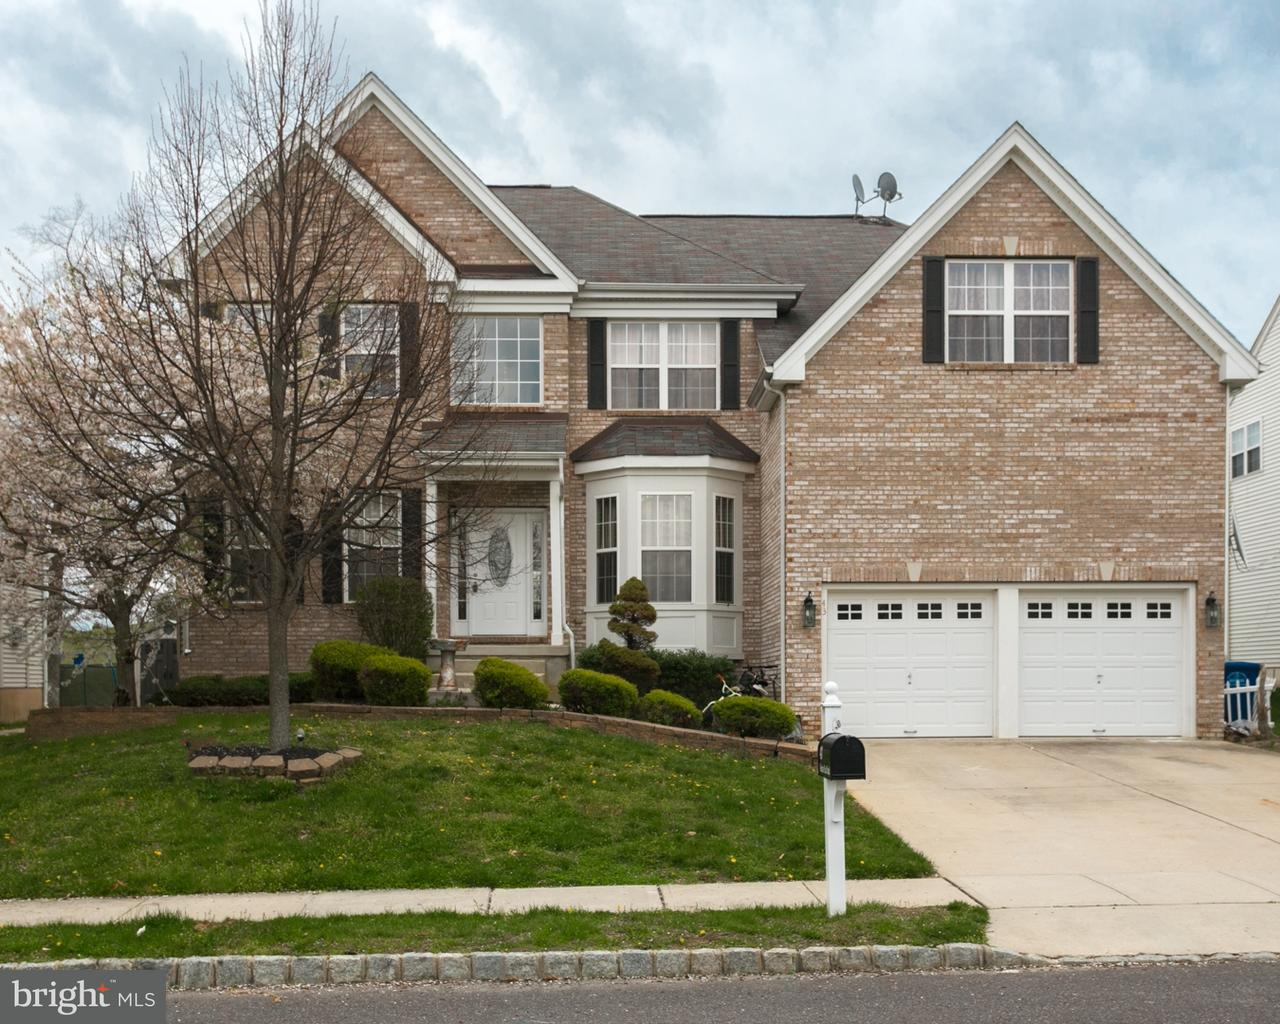 Single Family Home for Sale at 43 MEADOW RUN Road Bordentown, New Jersey 08505 United States